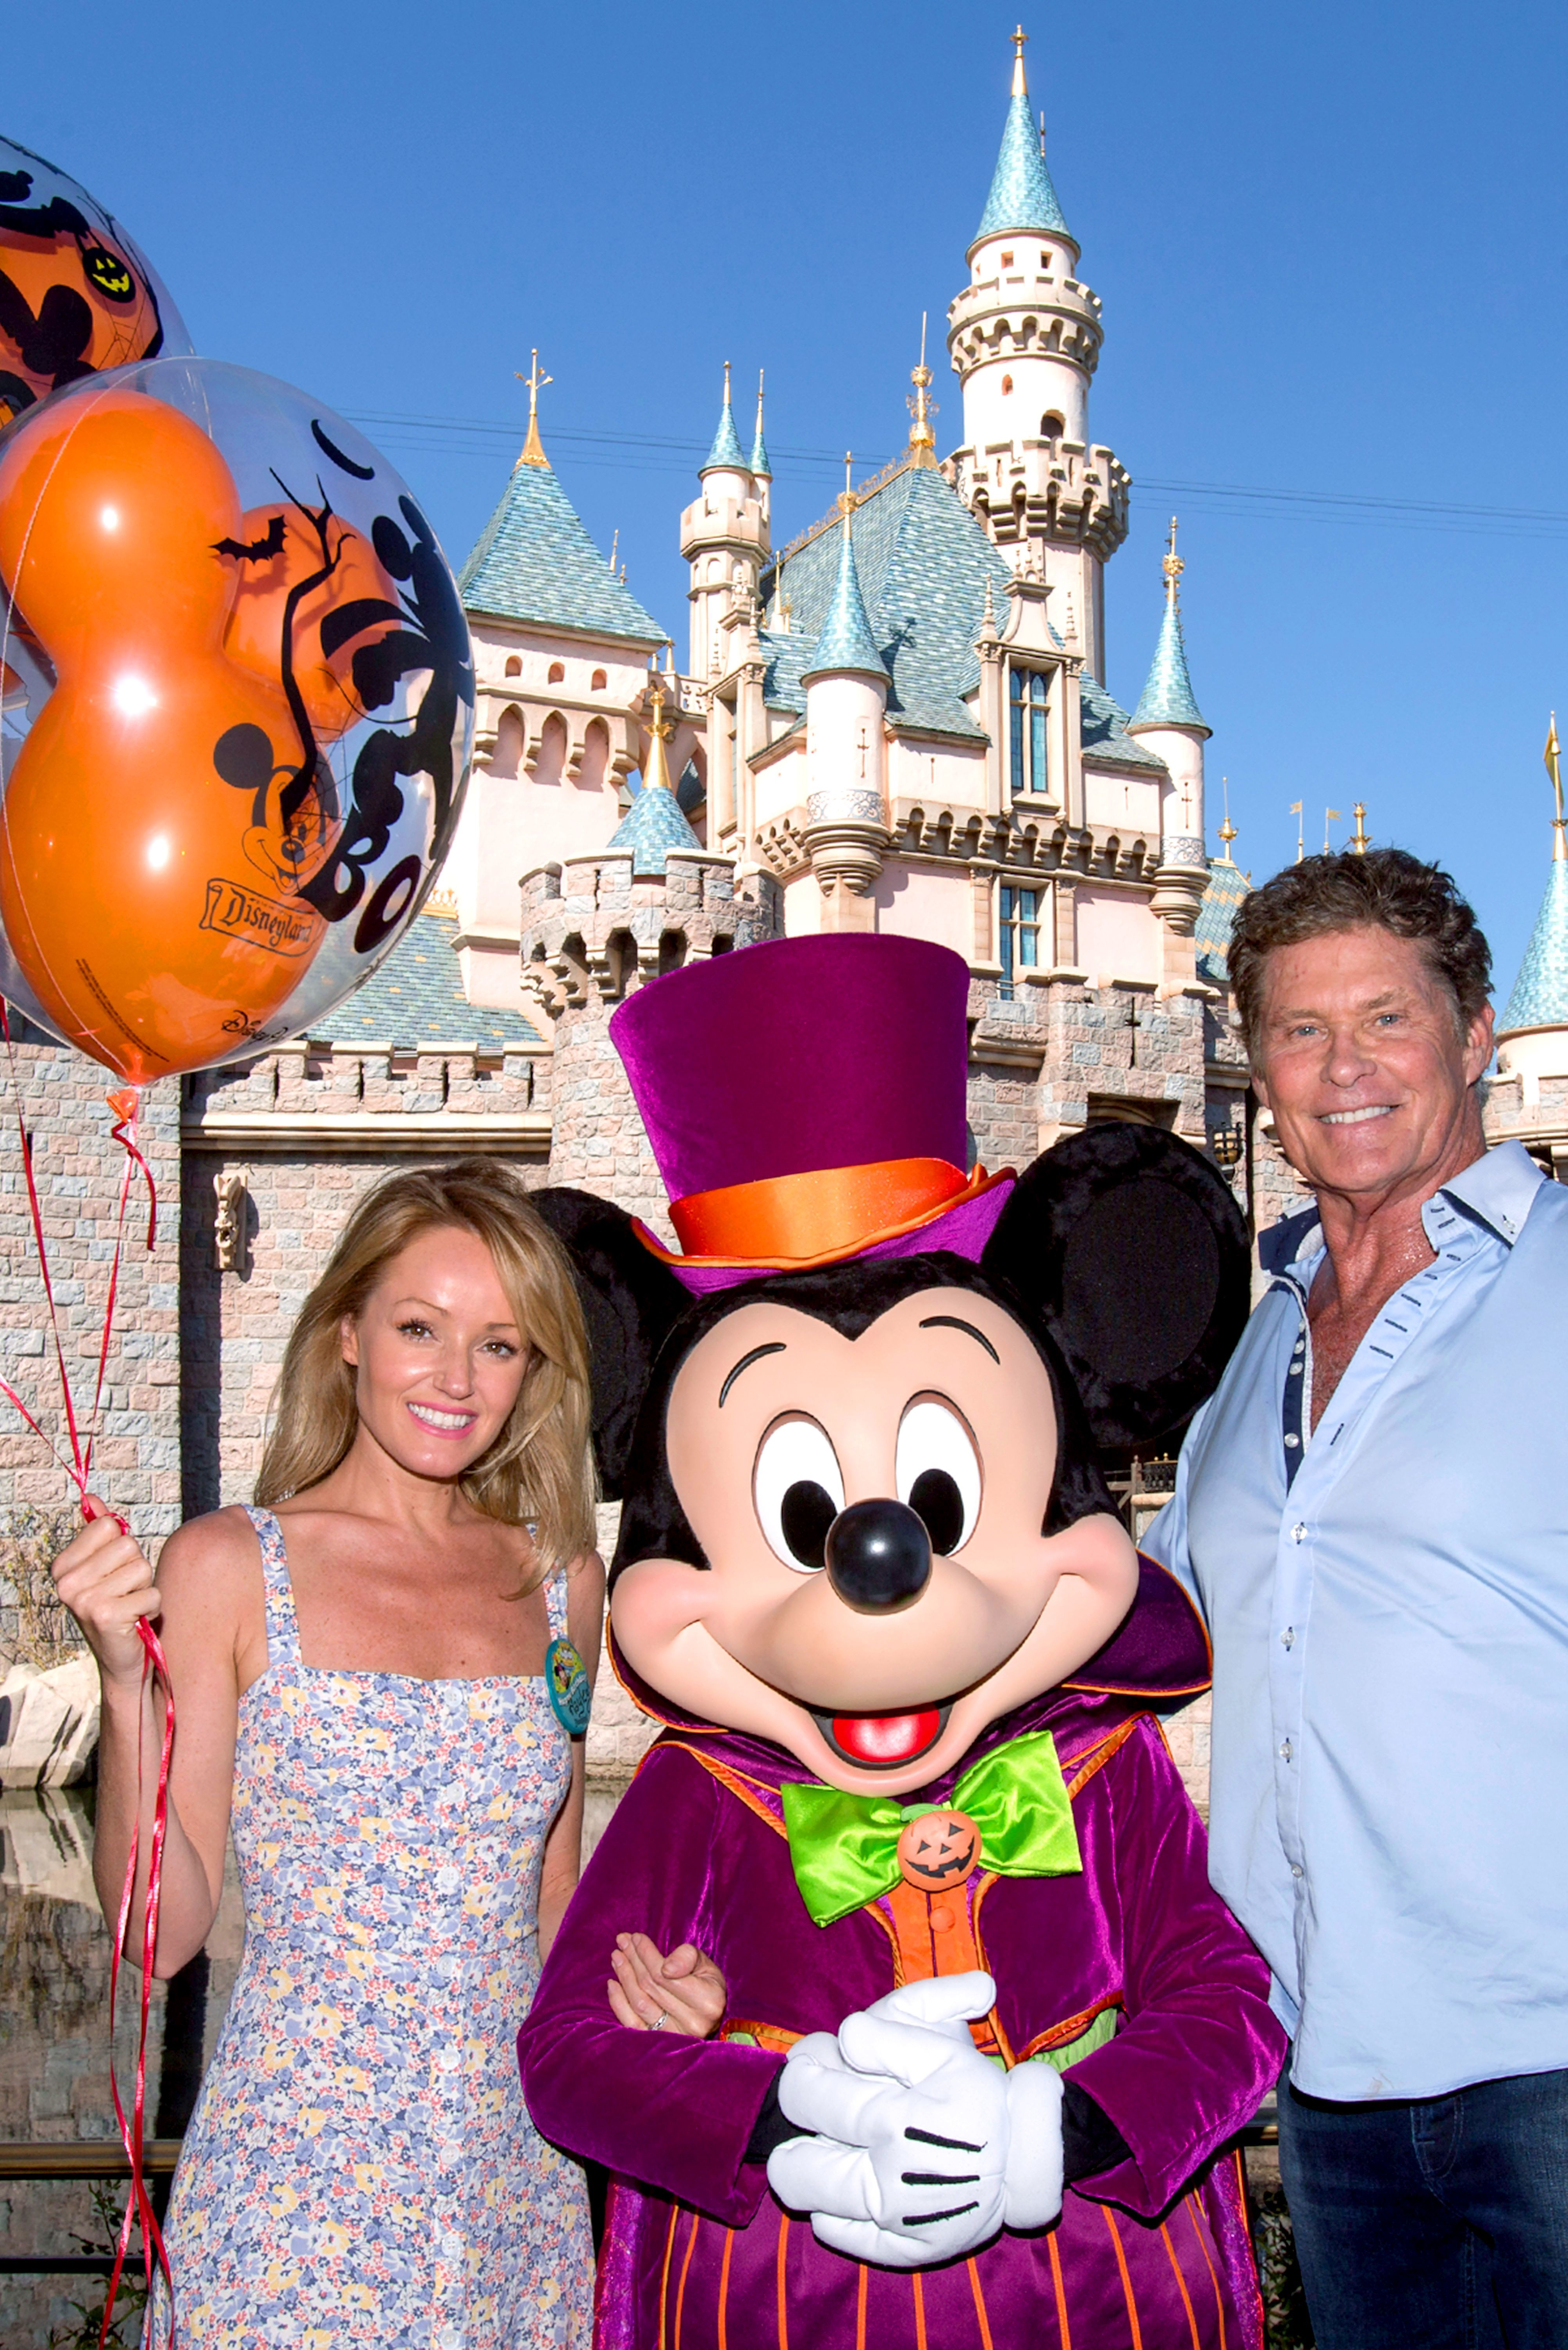 David Hasselhoff celebrates wife Hayley Roberts' birthday with Mickey Mouse during Halloween Time at Disneyland in Anaheim, California, on Sept. 19, 2018.